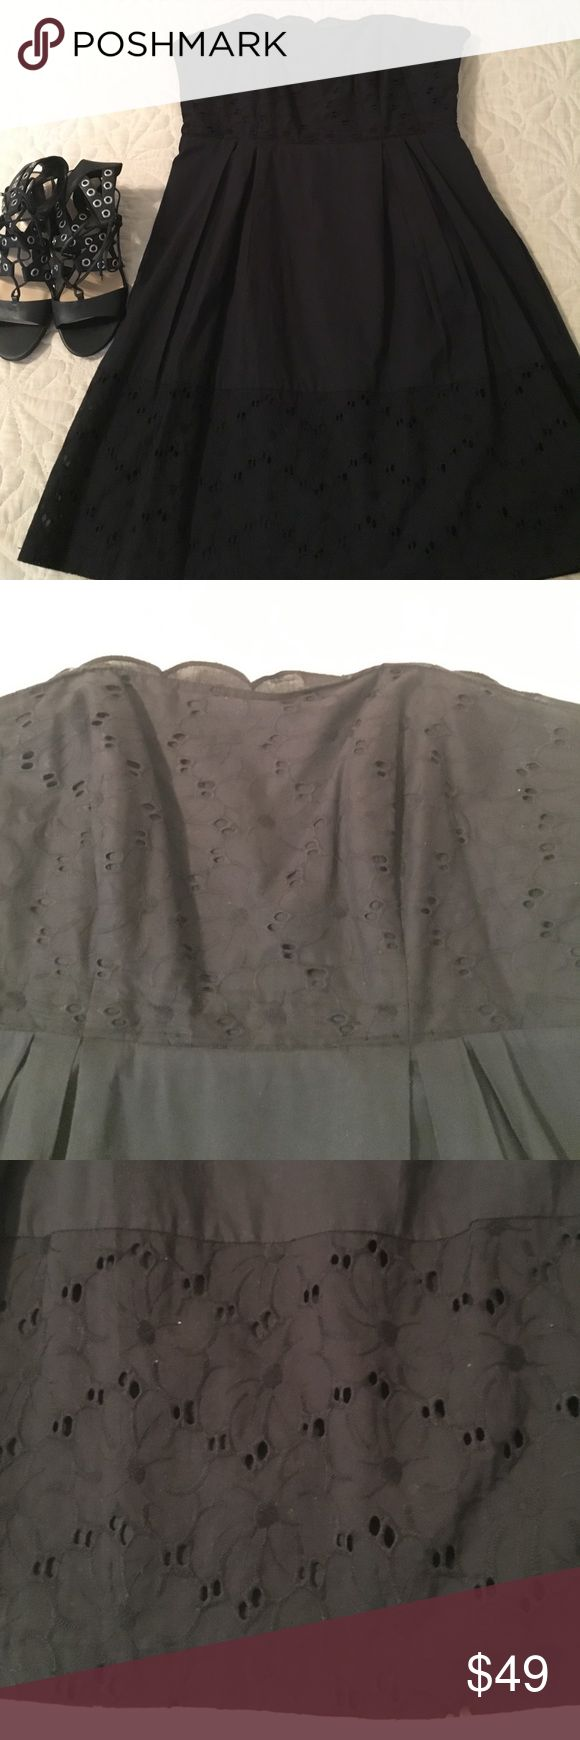 Strapless Laundry dress Strapless Laundry dress. Has black eyelet on the top and bottom . Fully lined. Side zipper. Tag states size 10 but fits more like size 8. Lying flat pit to pit measurement is about 18 inches. Length from bust to bottom is about 30.5 inches.  100% cotton. Excellent condition. Final price. Laundry by Shelli Segal Dresses